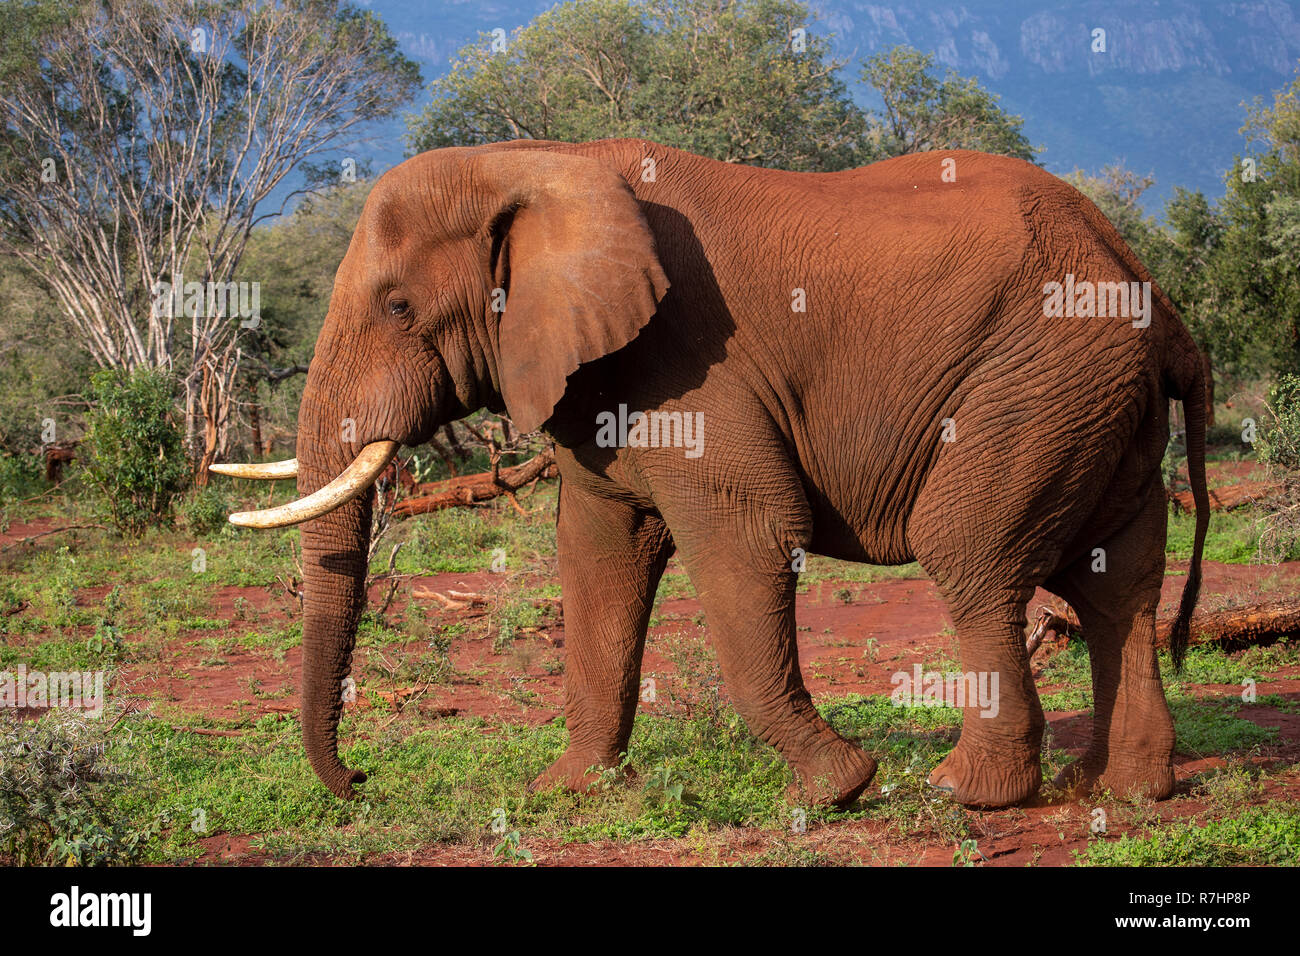 African elephant Loxodonta africana close up in profile on the Zimanga private game reserve in South Africa - Stock Image